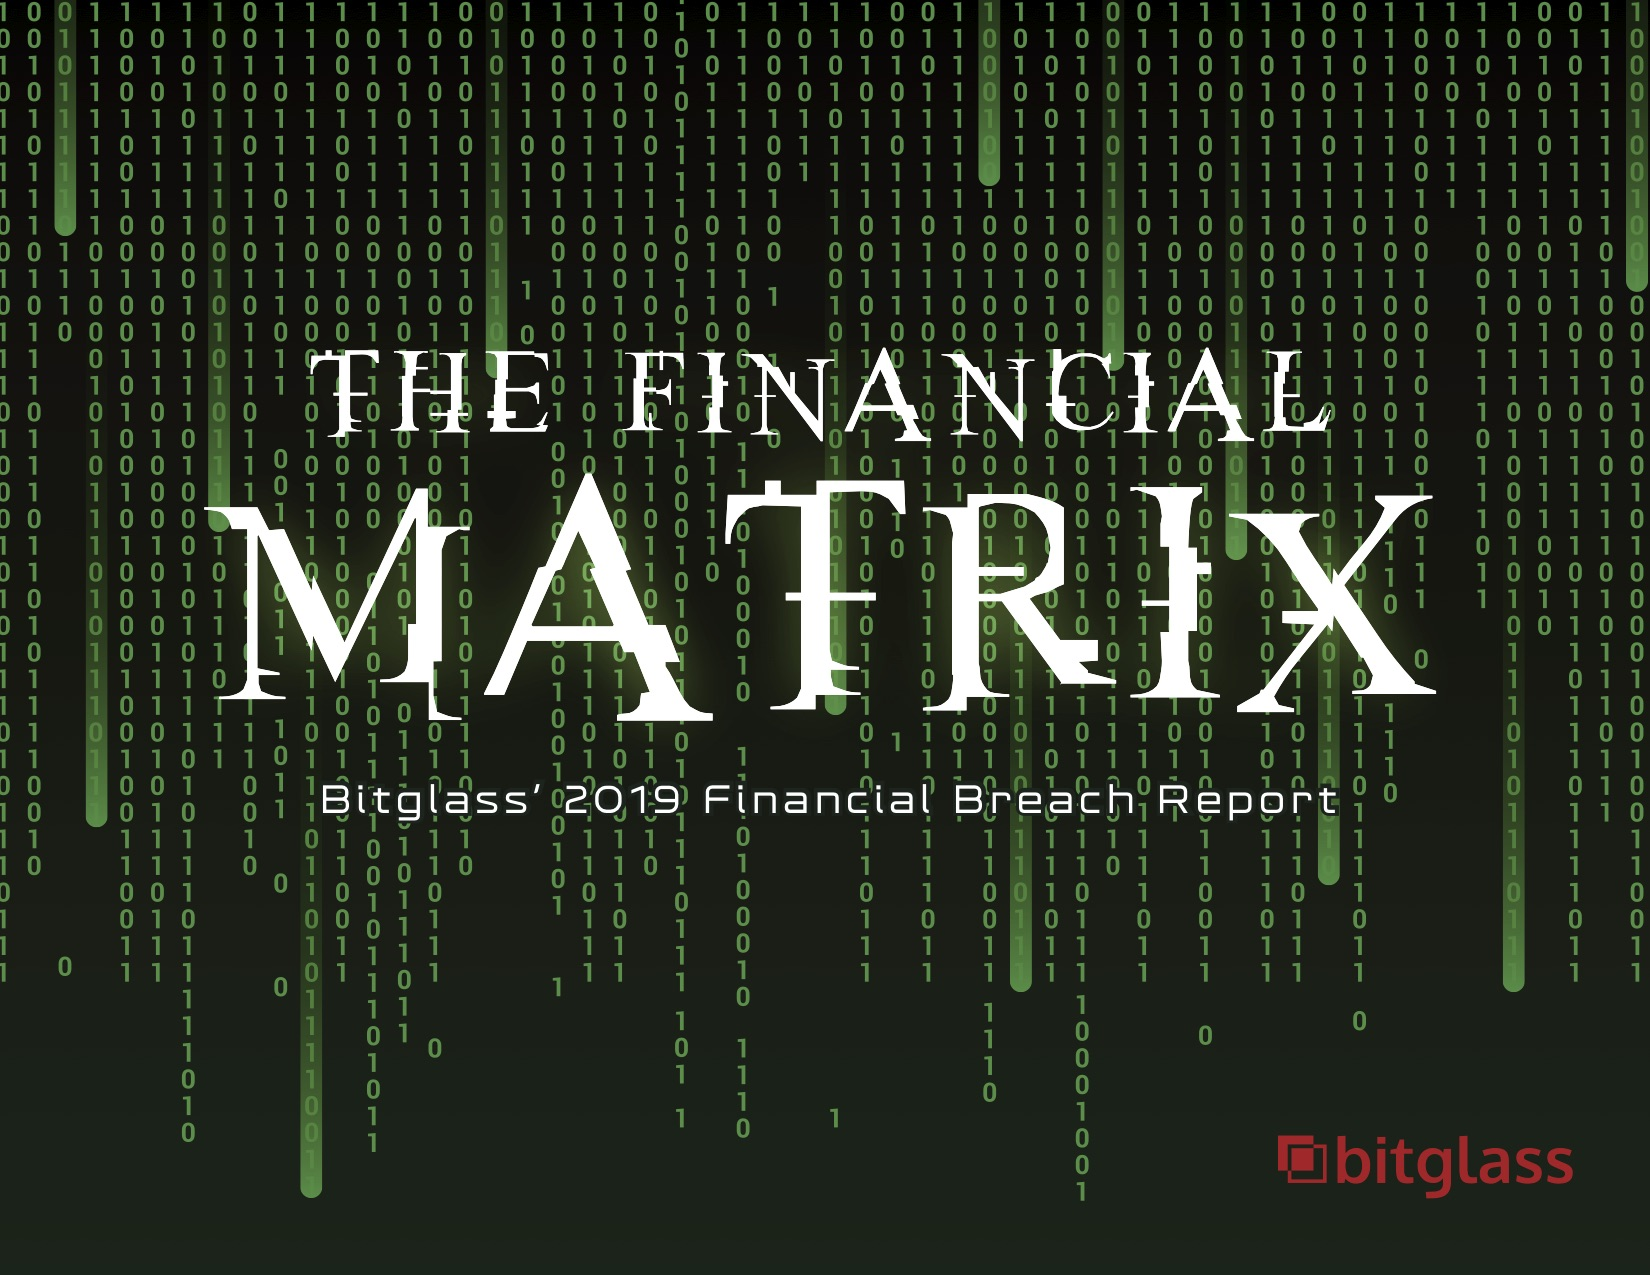 Bitglass_Matrix-1